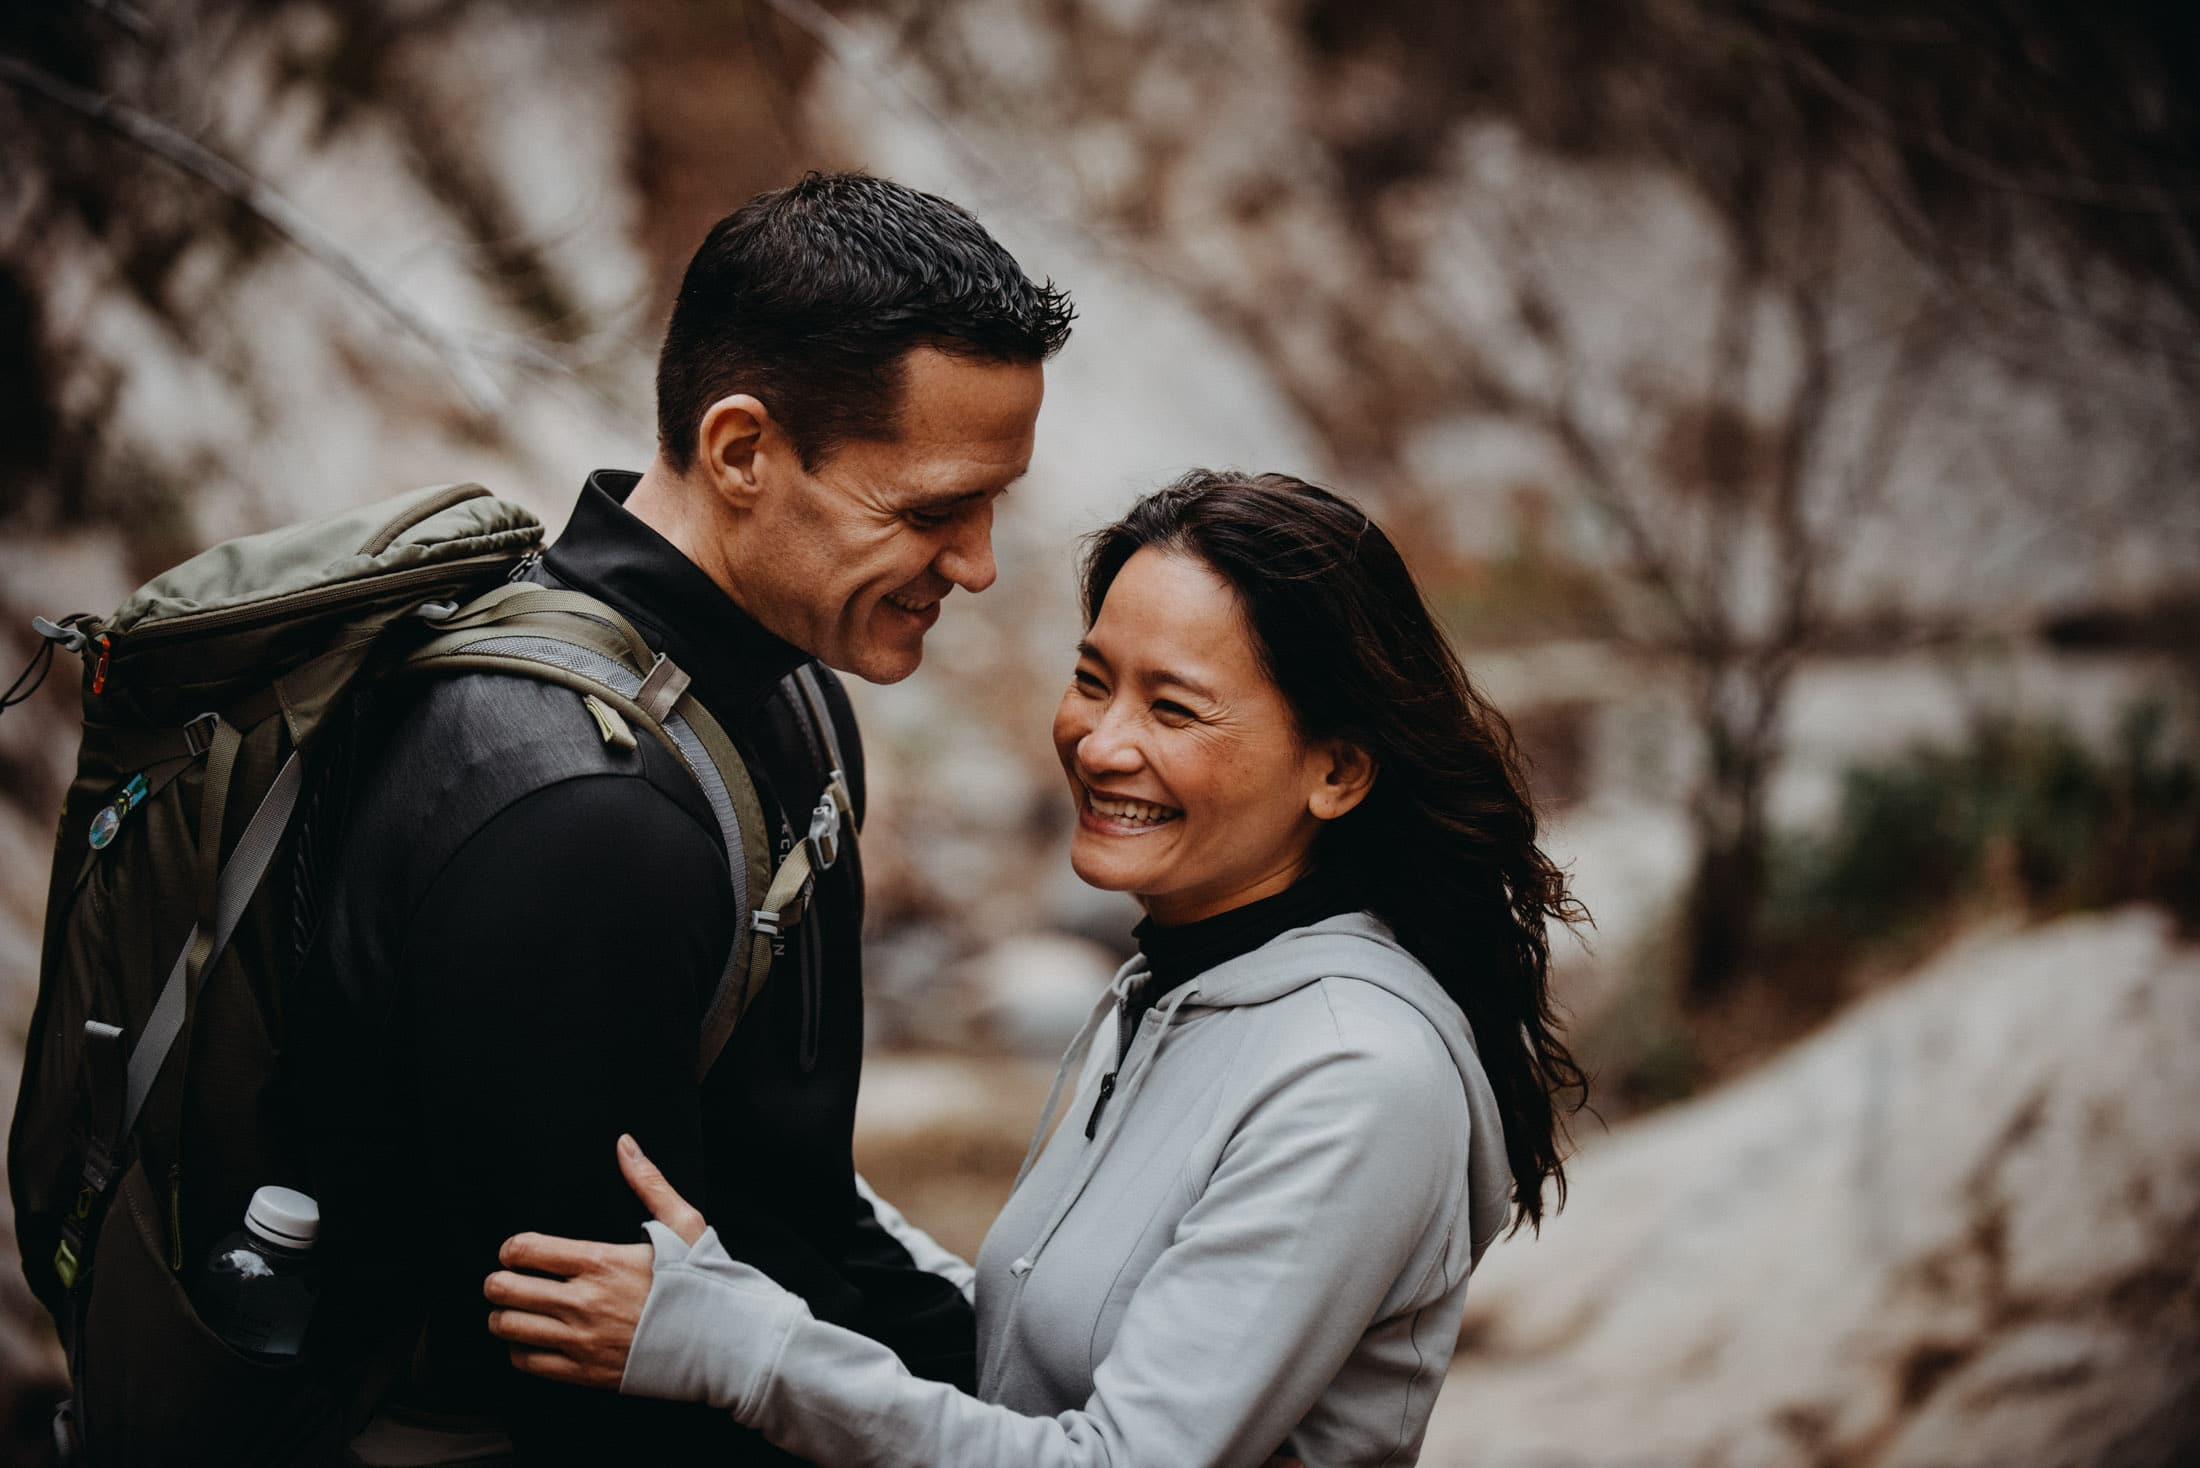 Angeles National Forest engagement photos